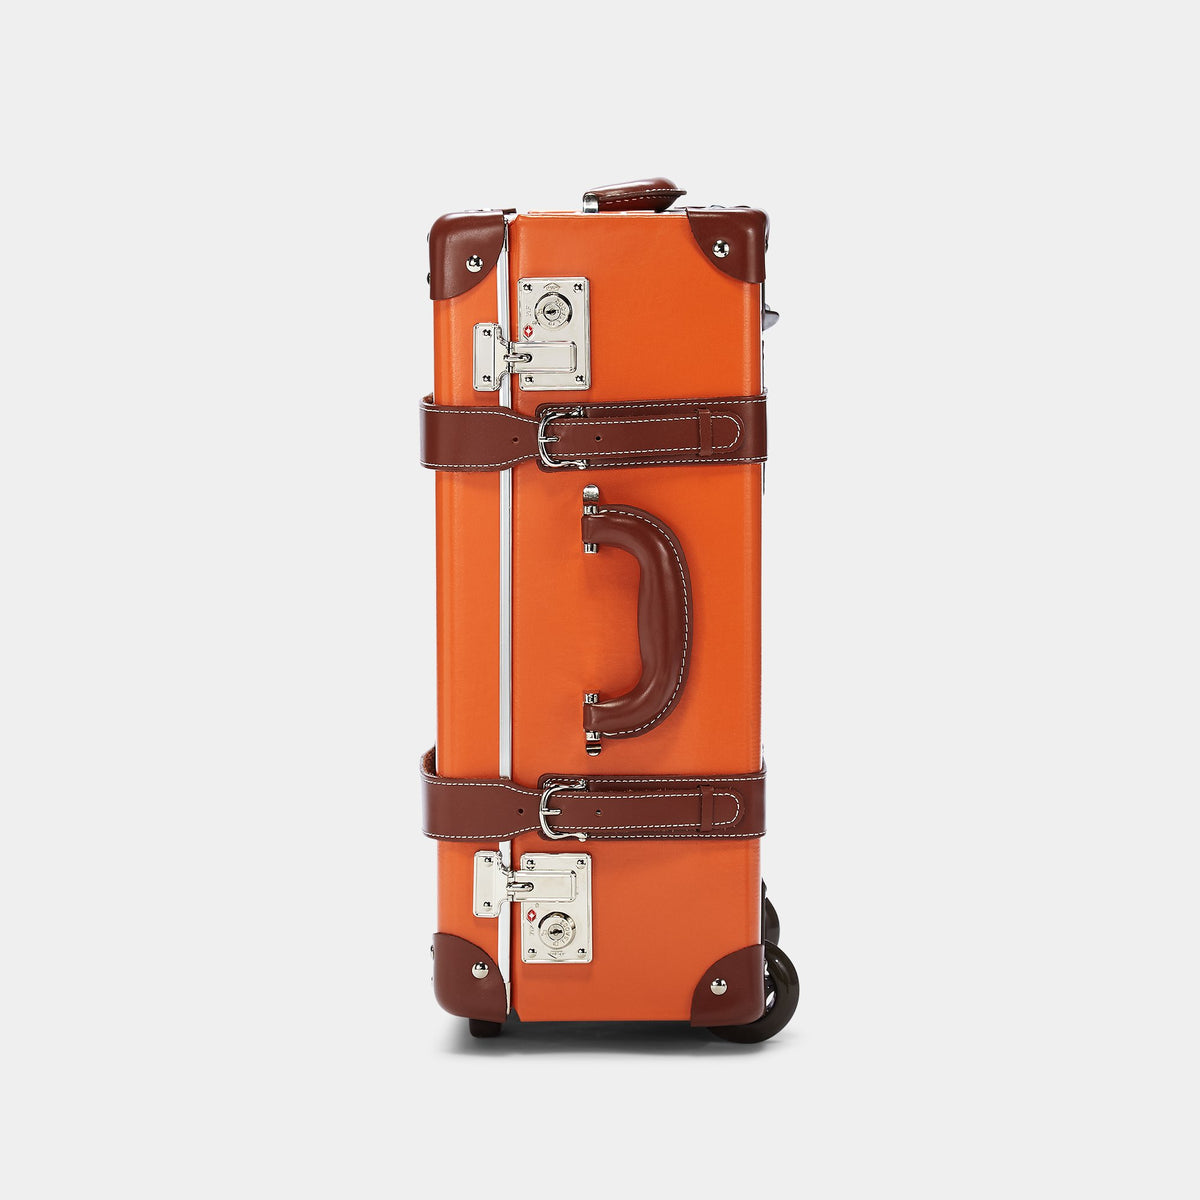 The Anthropologist Carryon in Orange - Vintage Style Leather Case - Exterior Side